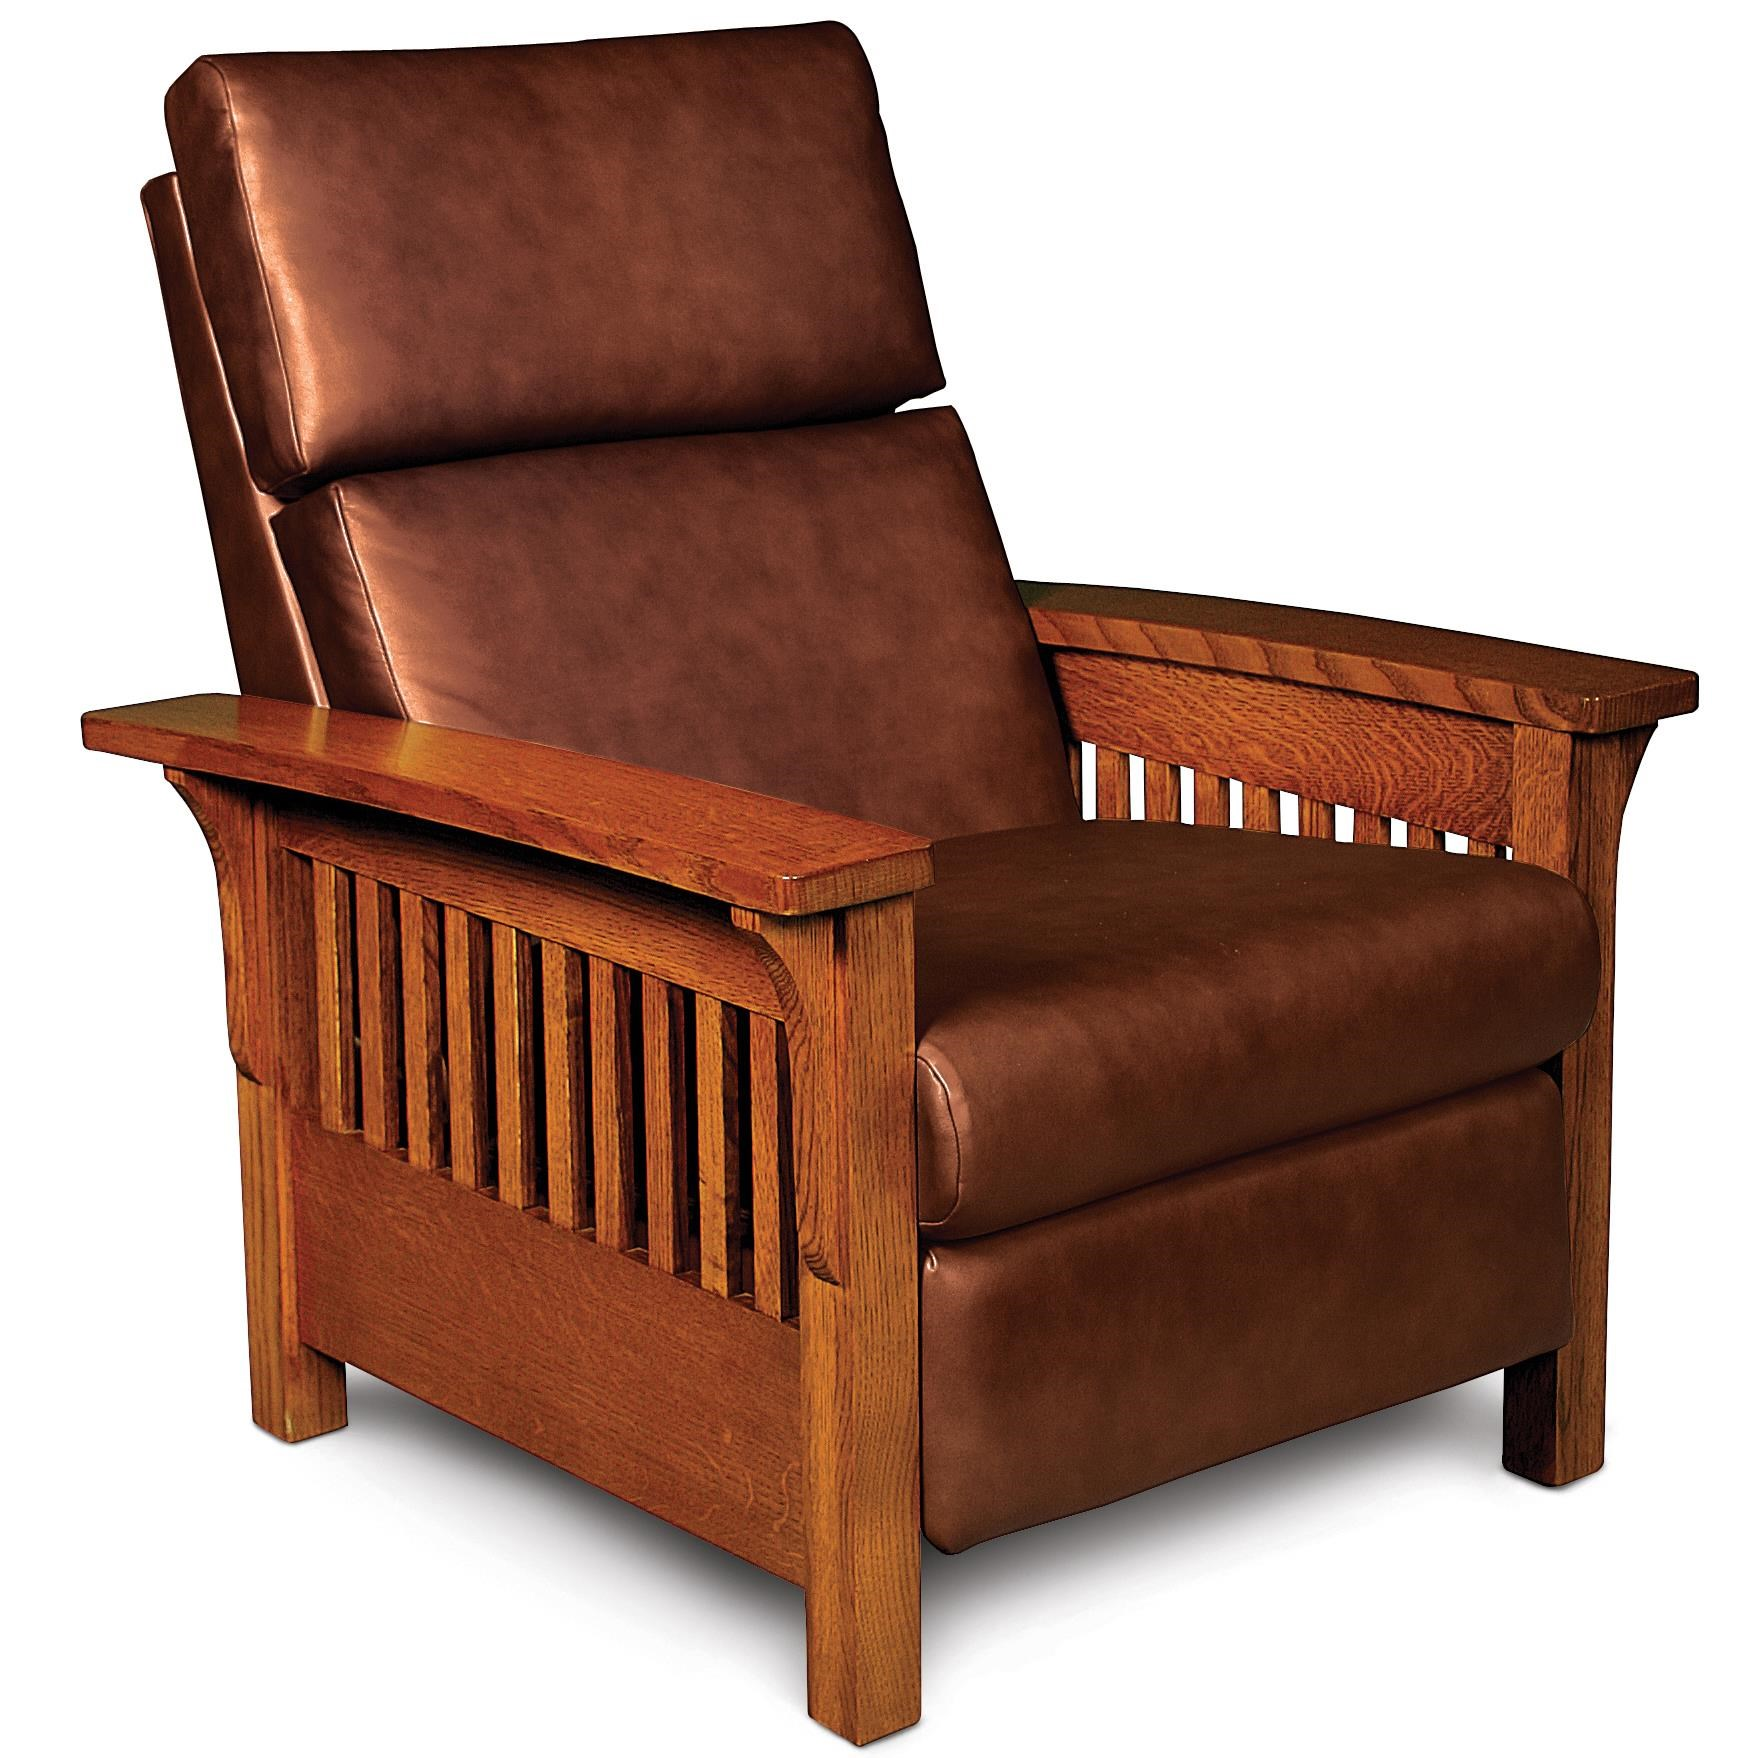 Ordinaire Simply Amish Grand RapidsRecliner ...